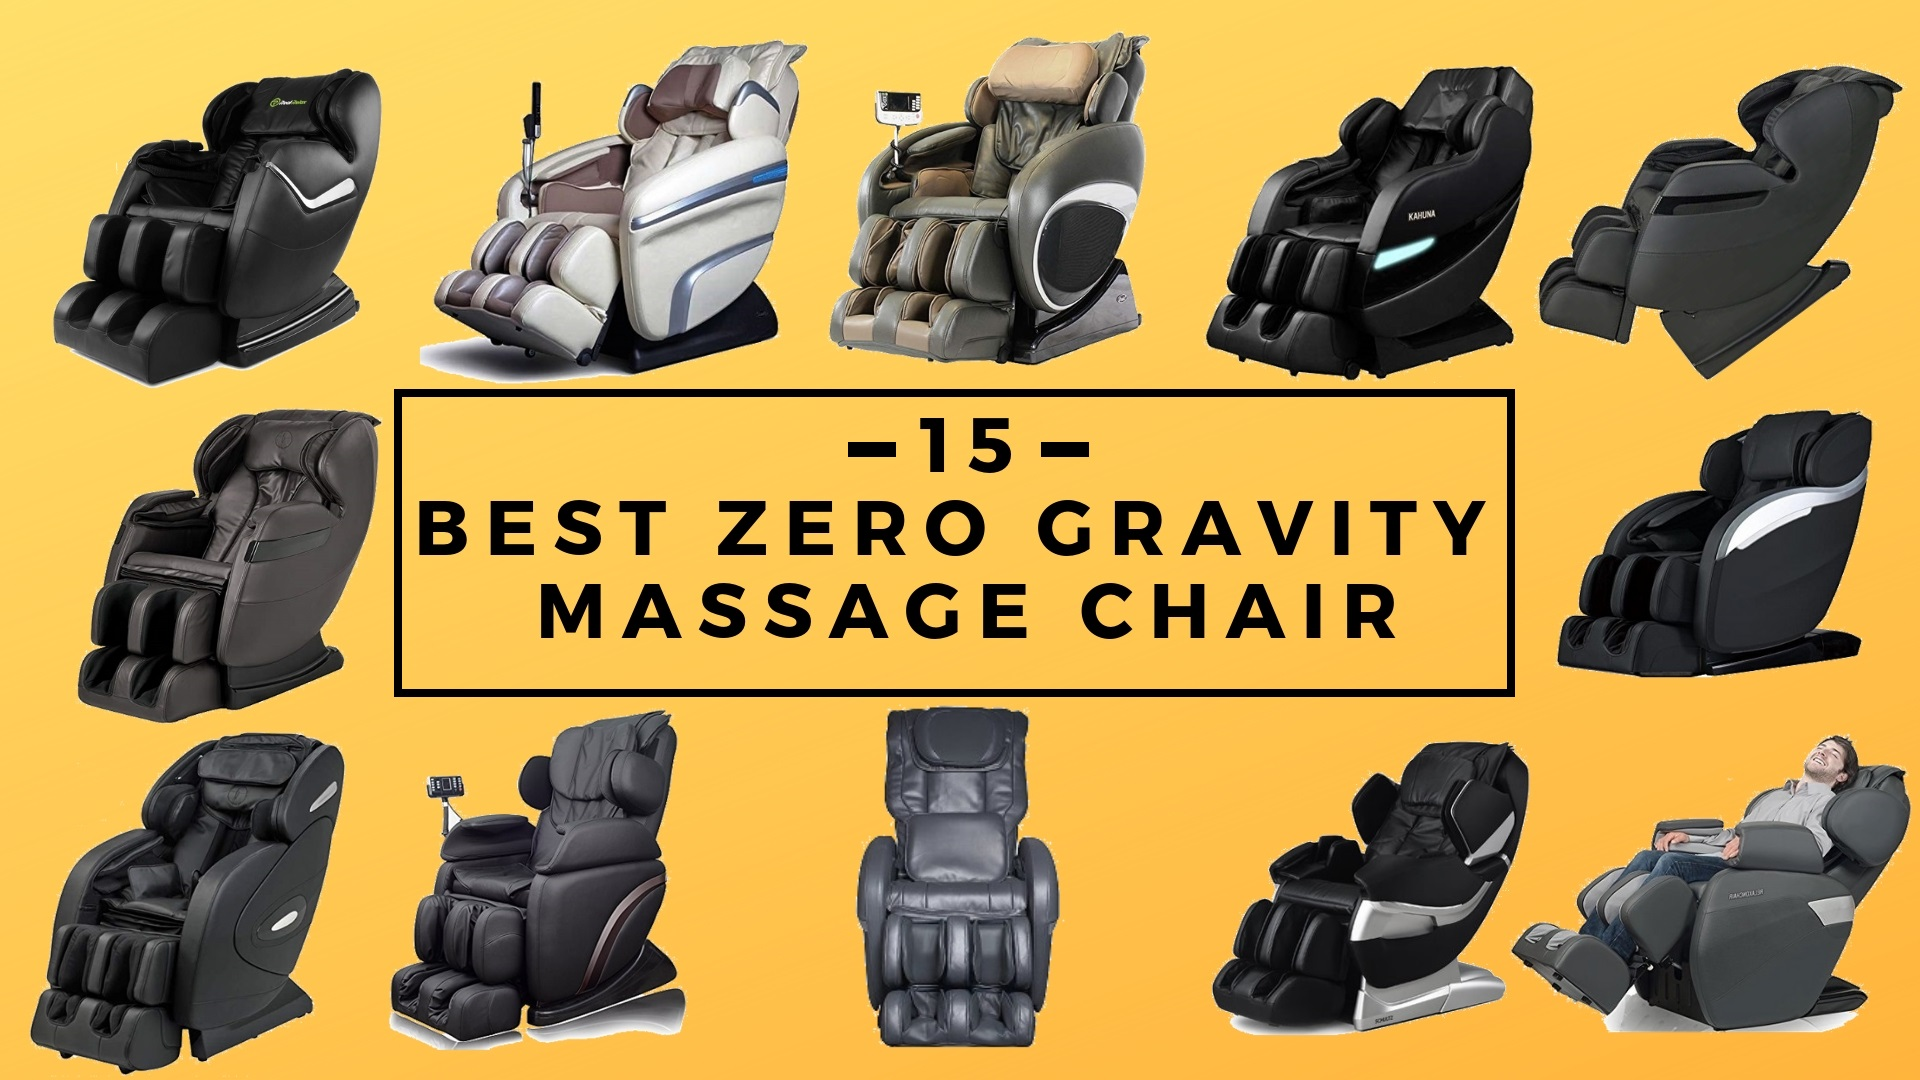 best zero gravity massage chair outdoor patio table and chairs with umbrella 15 full detailed reviews your